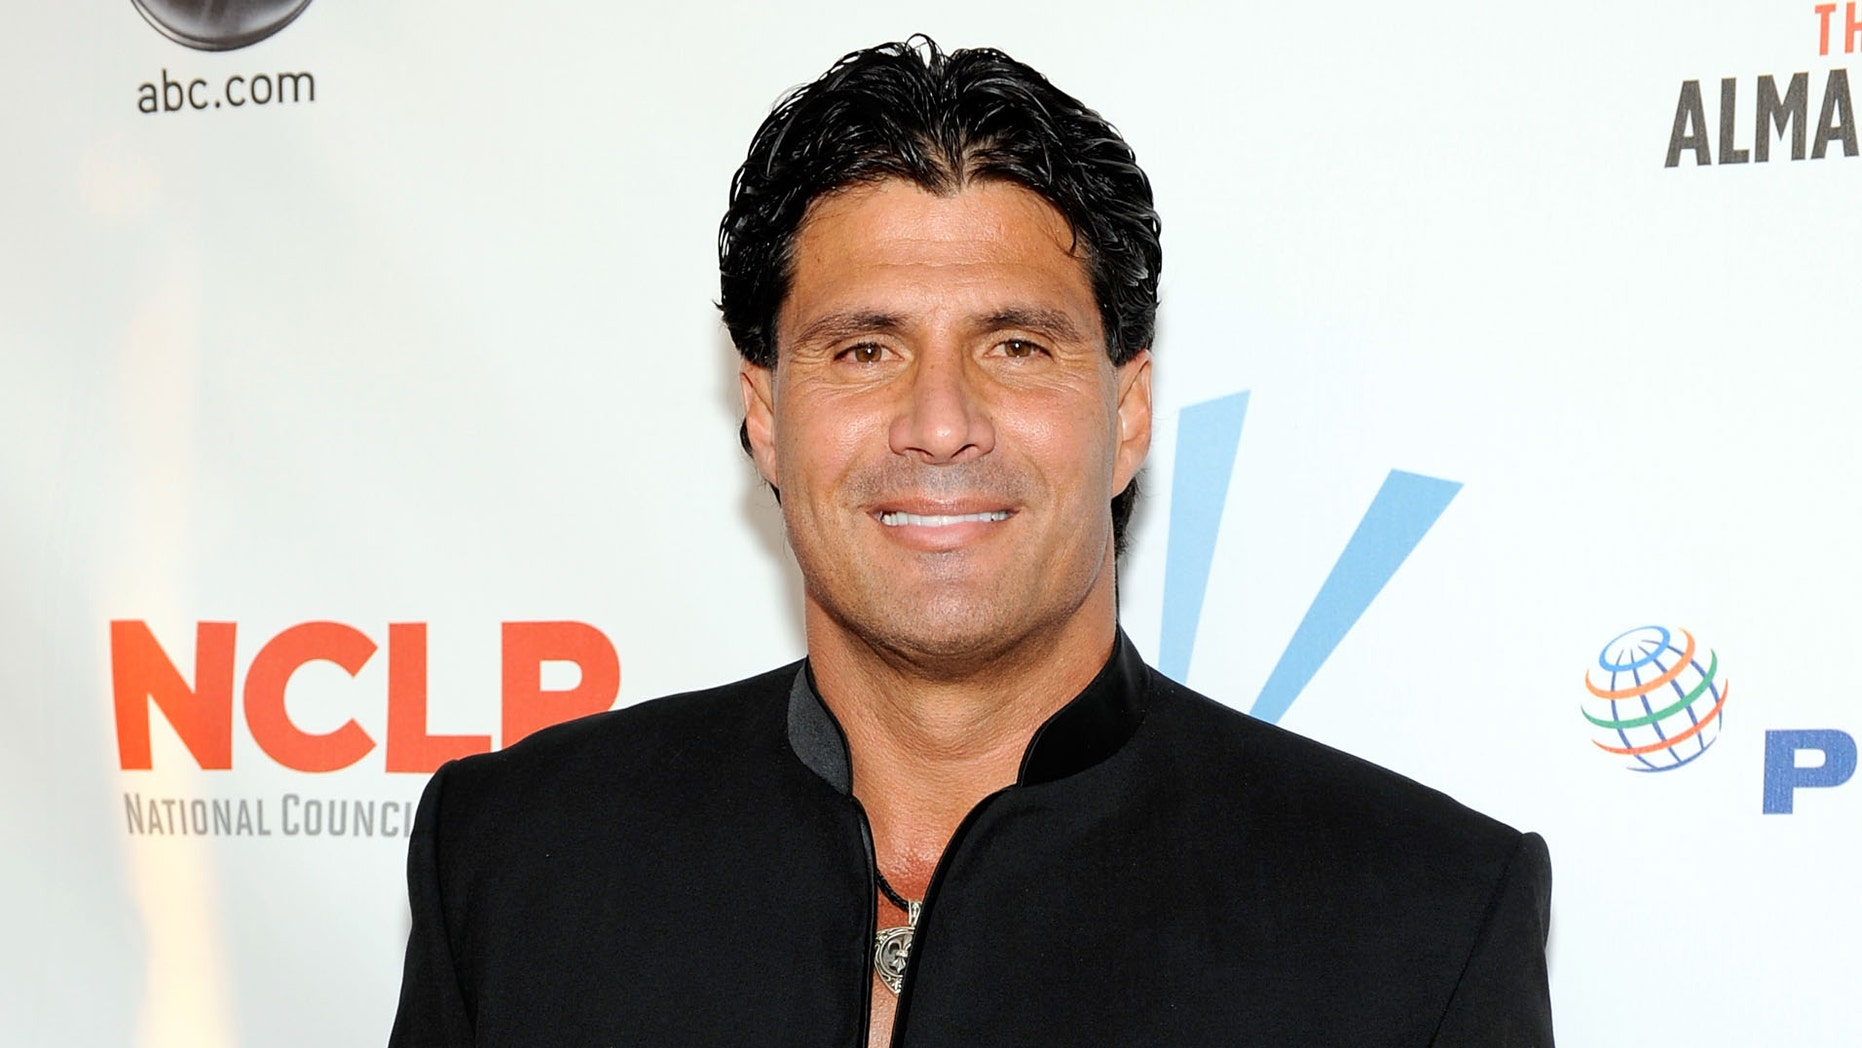 Former player Jose Canseco arrives at the ALMA Awards held at Royce Hall on September 17, 2009 in Los Angeles.